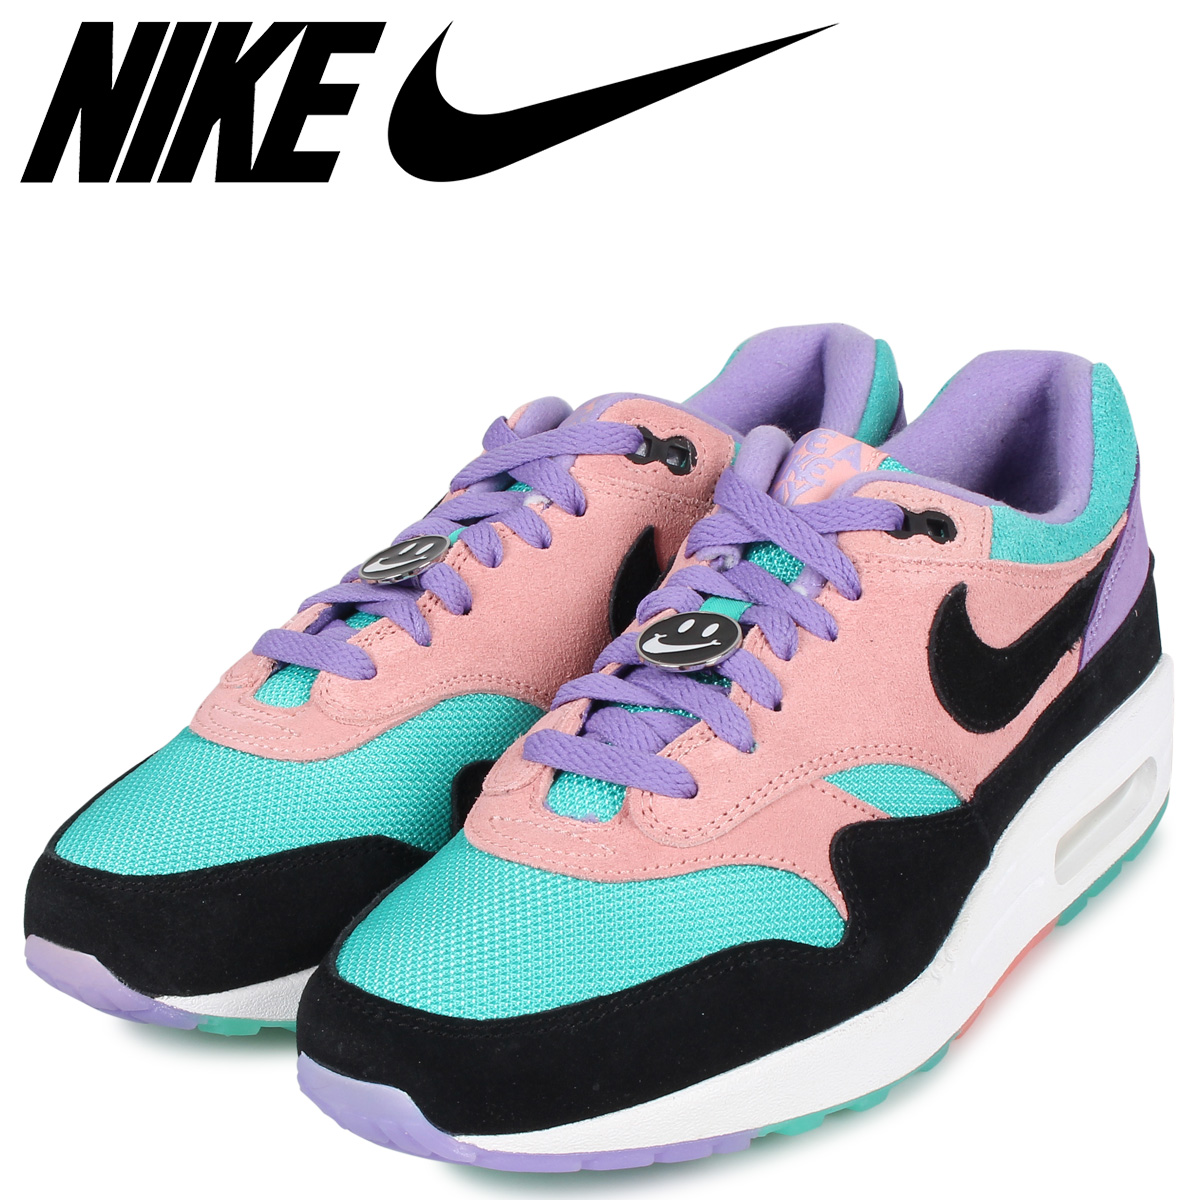 NIKE Kie Ney AMAX 1 sneakers men AIR MAX 1 ND HAVE A NICE DAY purple BQ8929 500